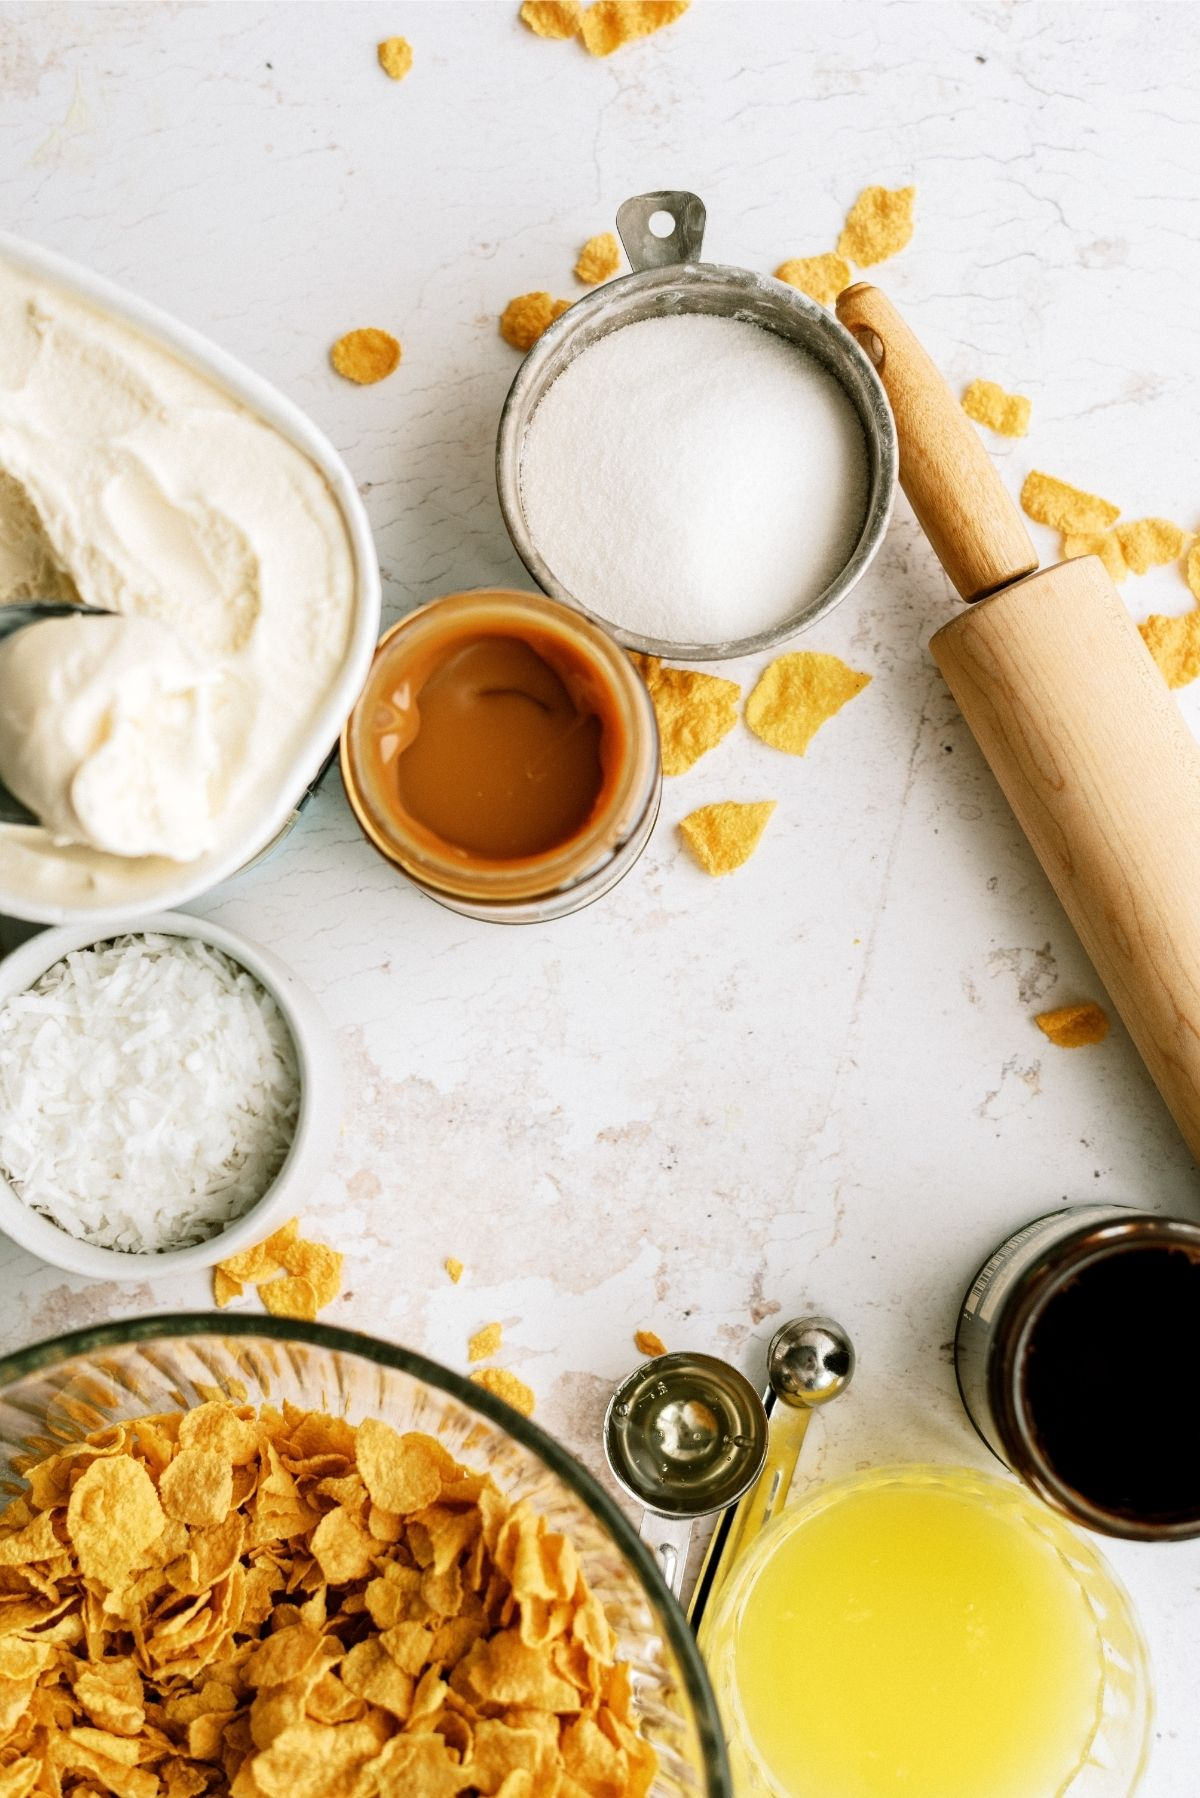 Ingredients for Homemade Fried Ice Cream